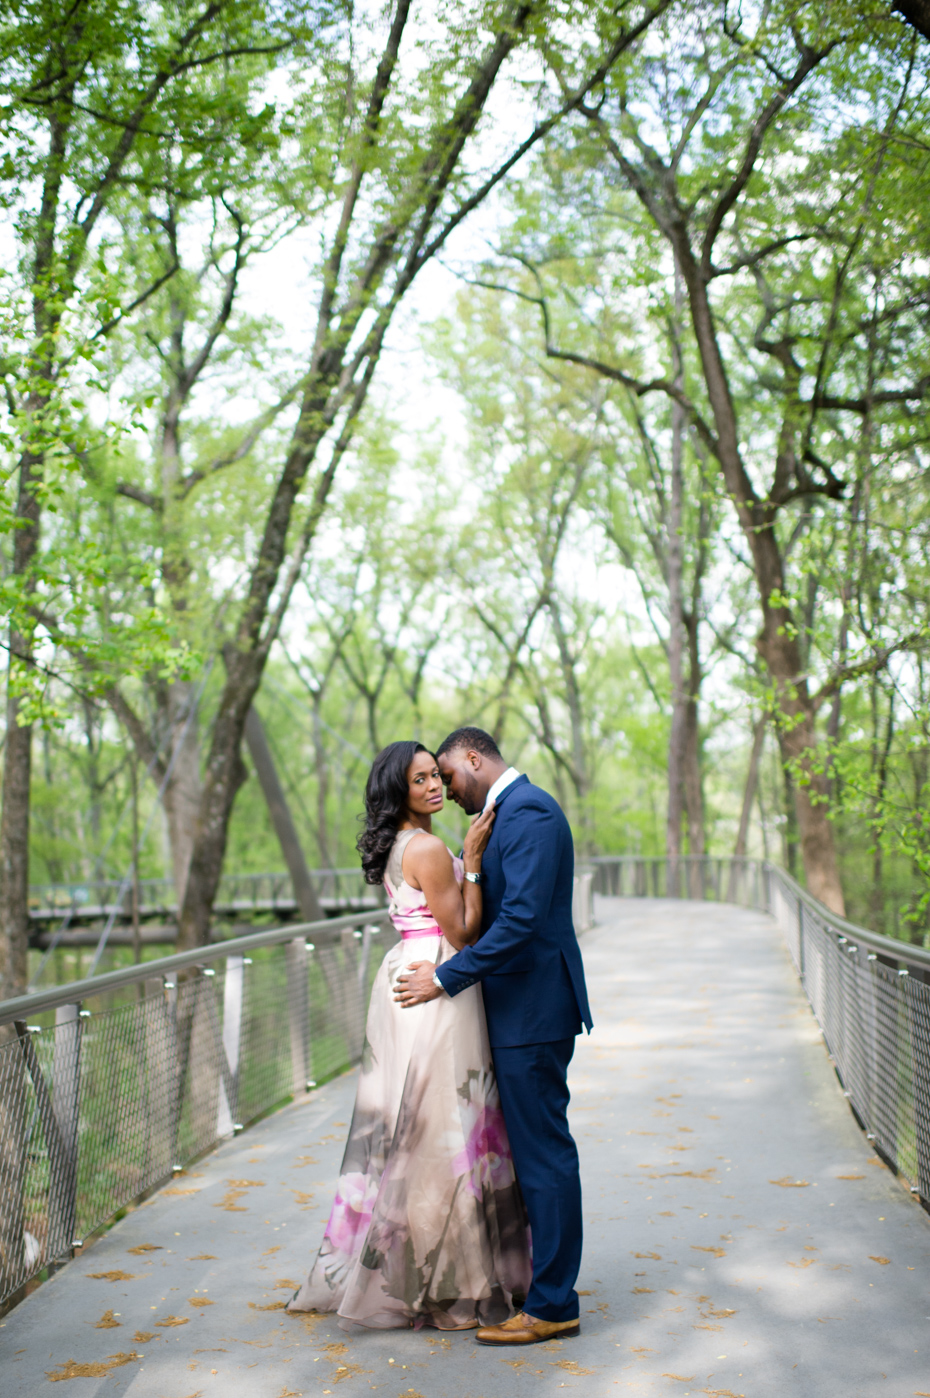 Where to take engagement pictures in Atlanta